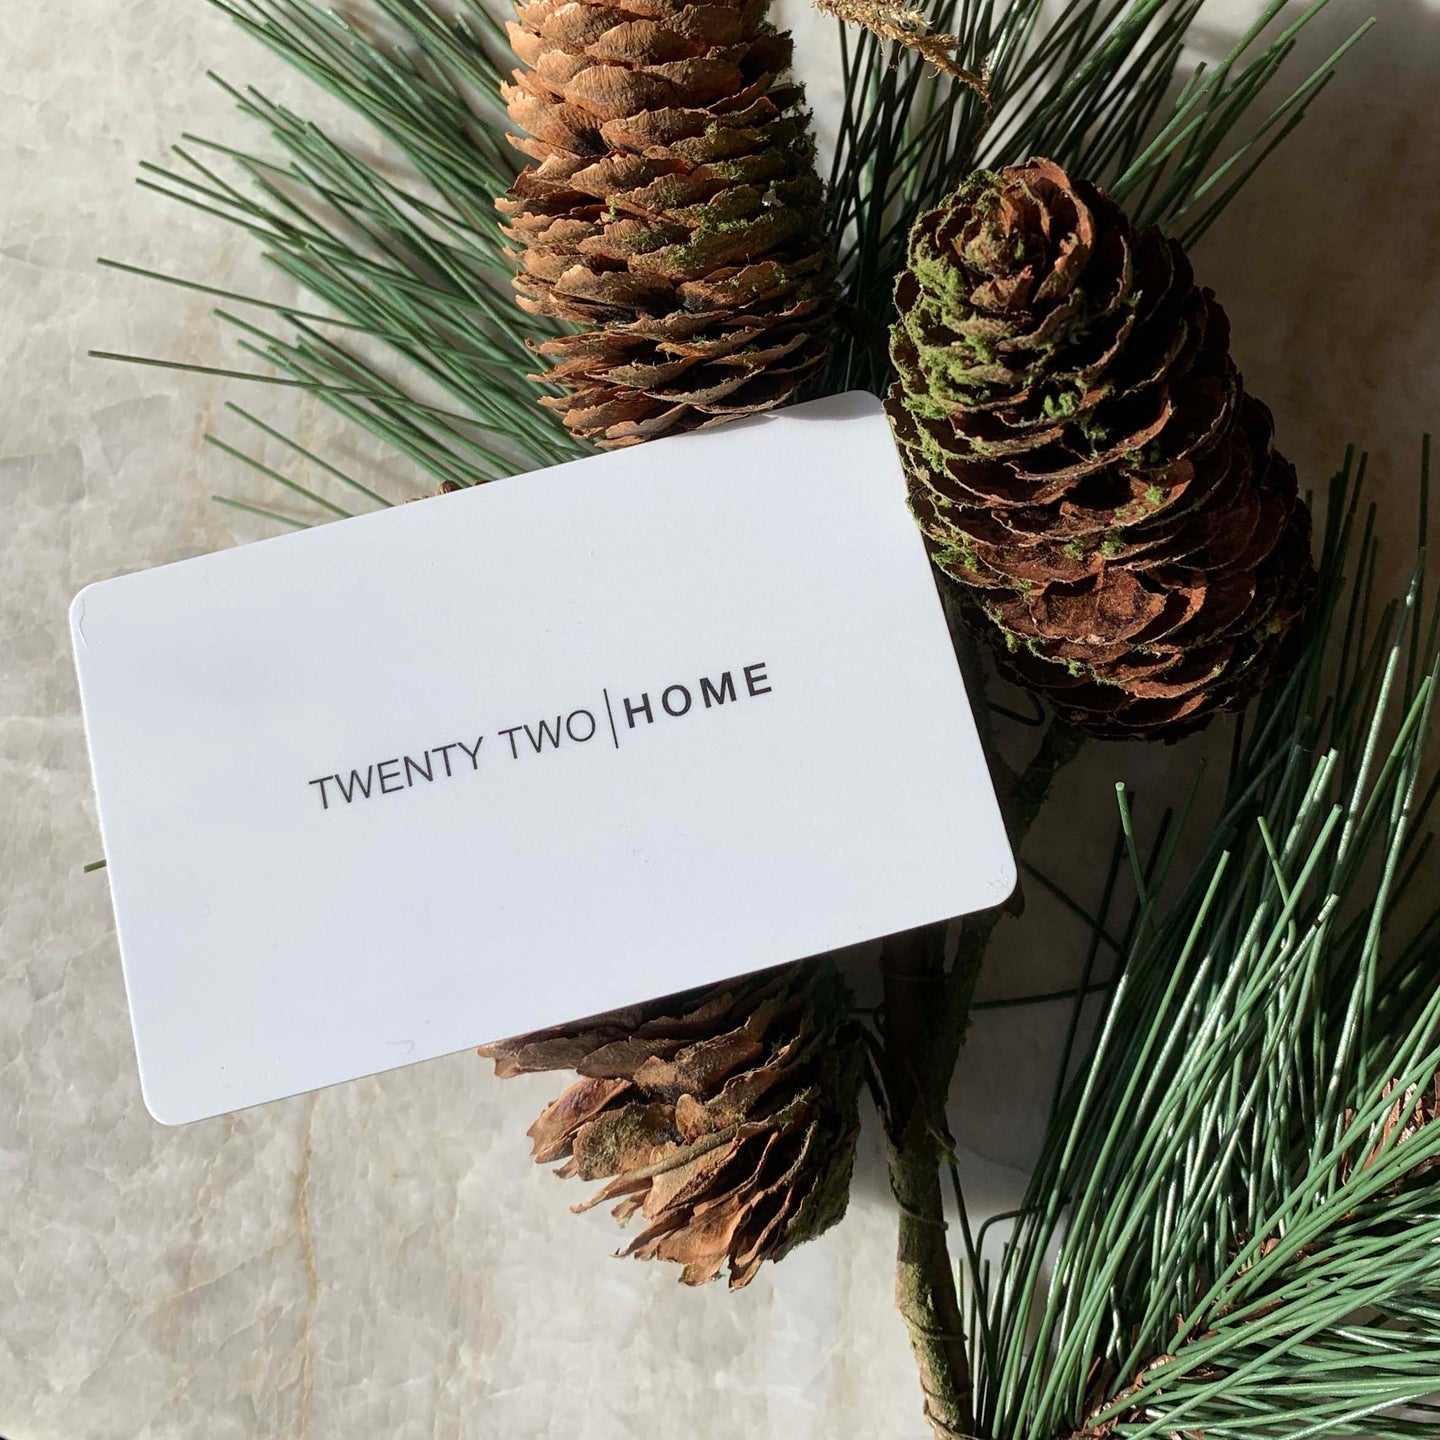 Twenty Two Home Gift Card